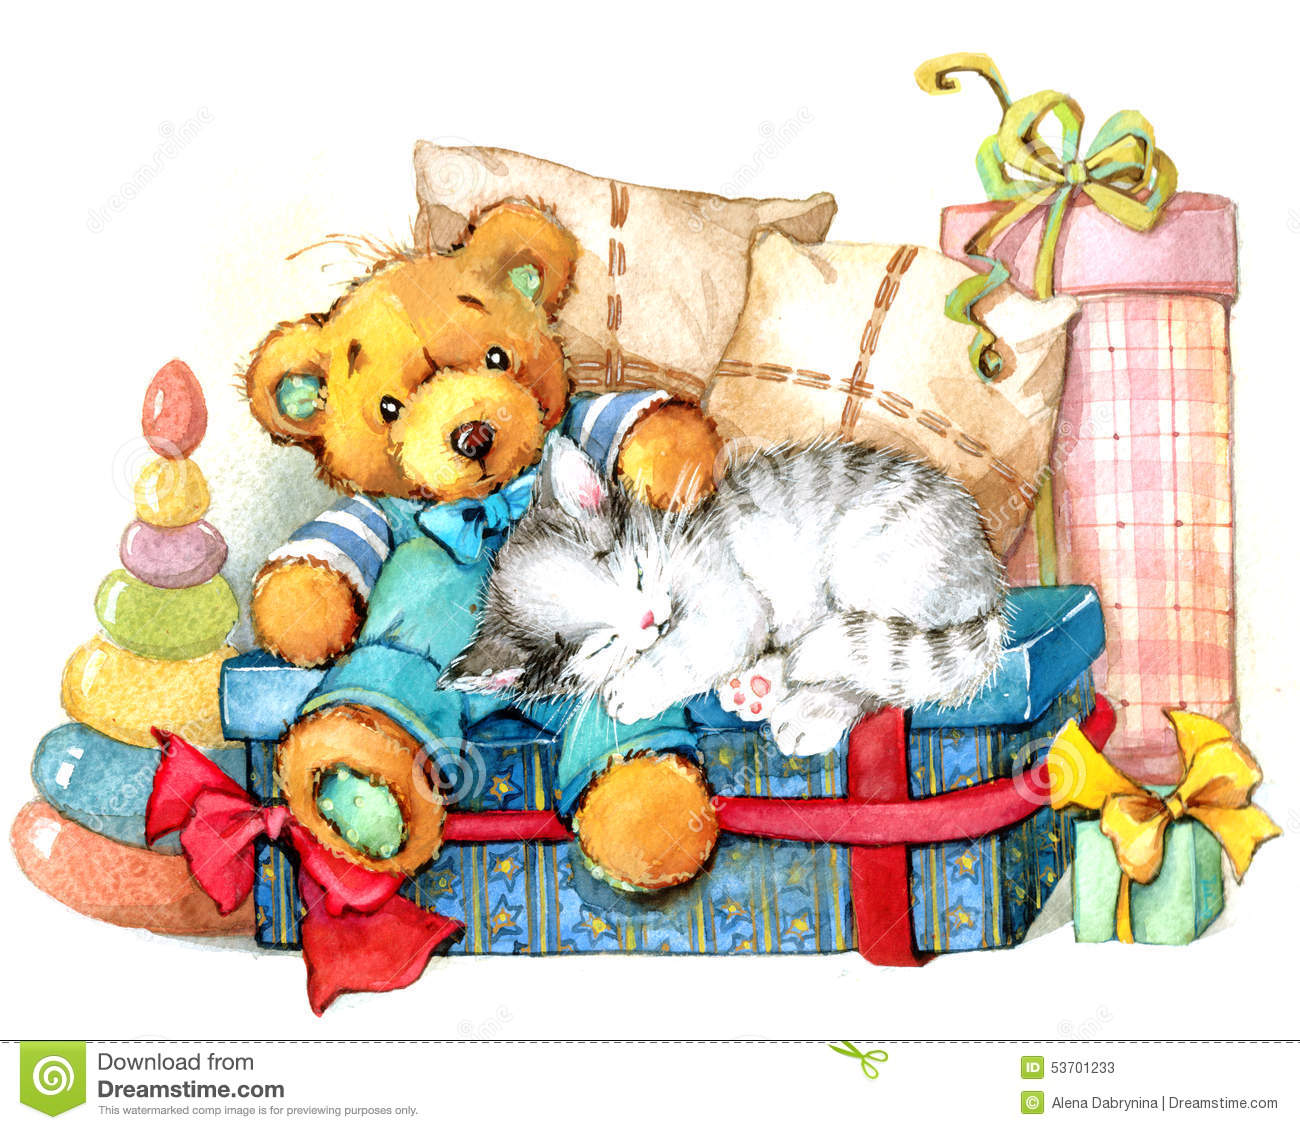 Teddy Bear Toy Background watercolor